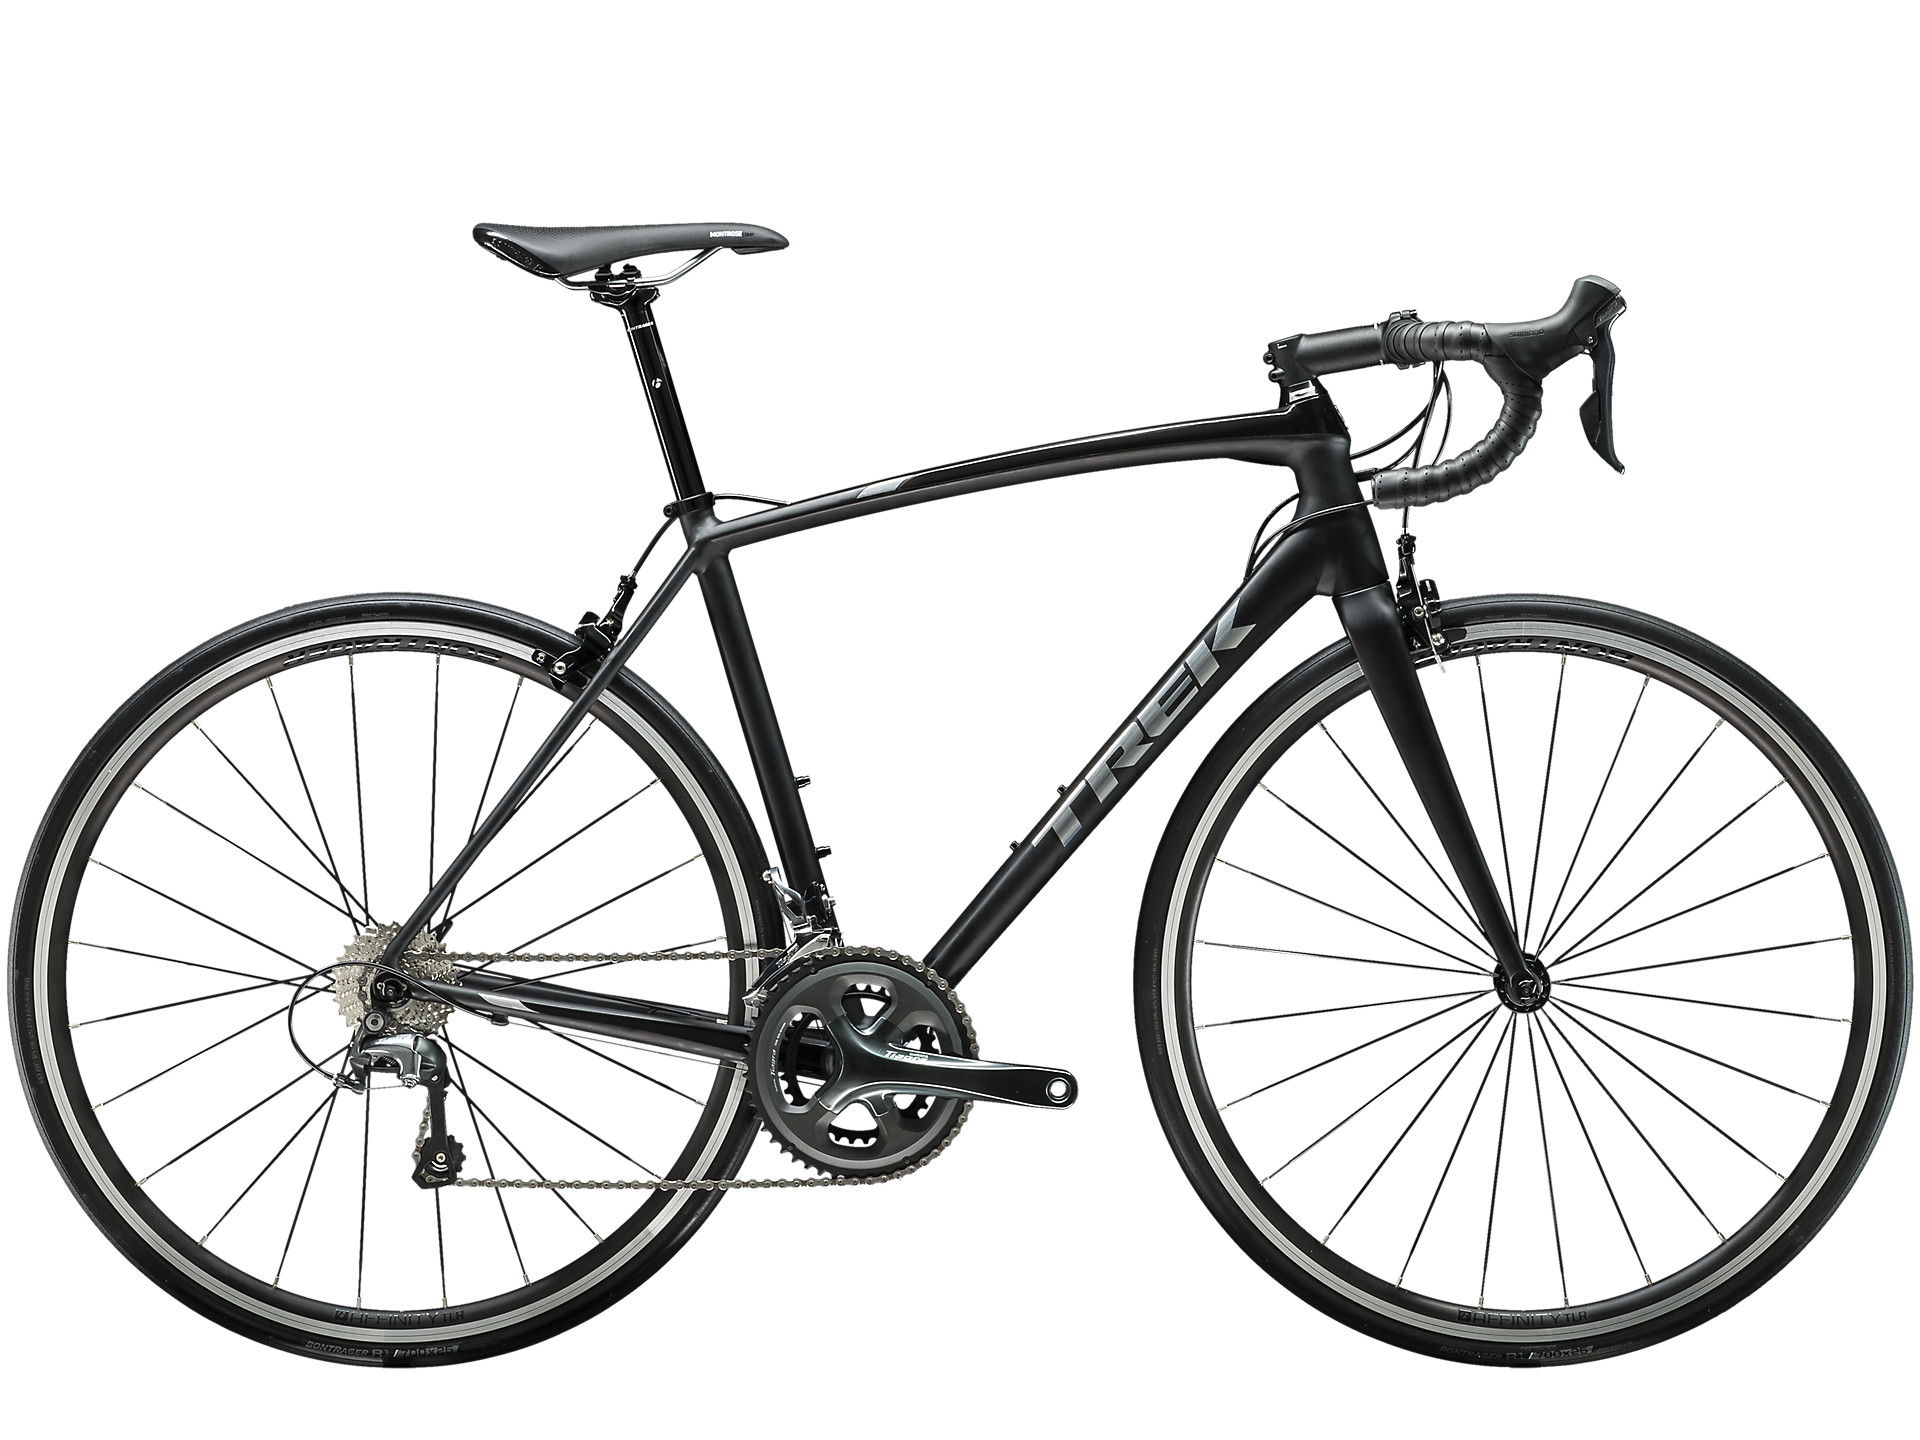 07a35e04971 Road bikes | Trek Bikes (GB)